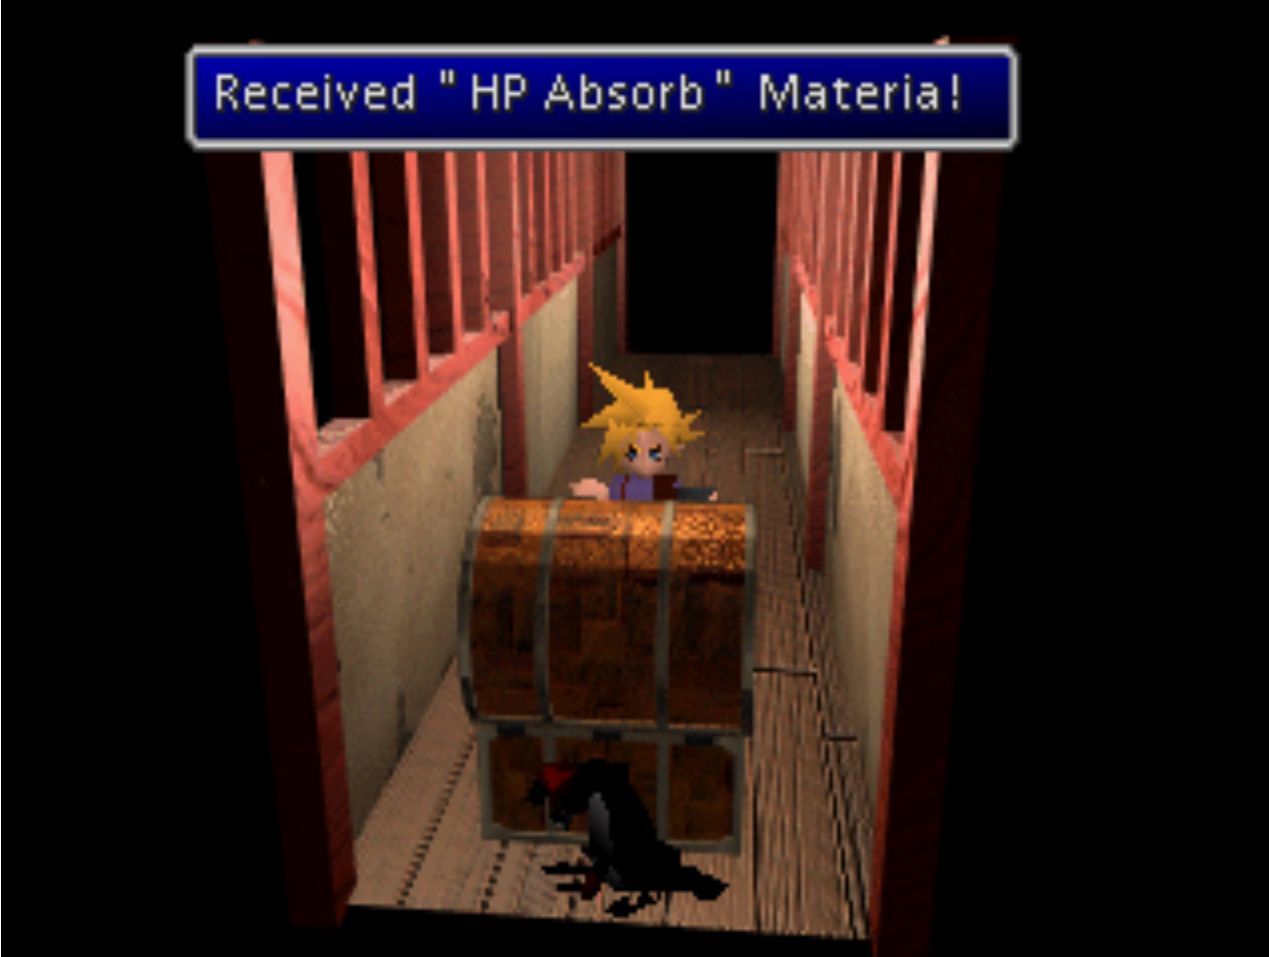 Hp Absorb Materia Acquired